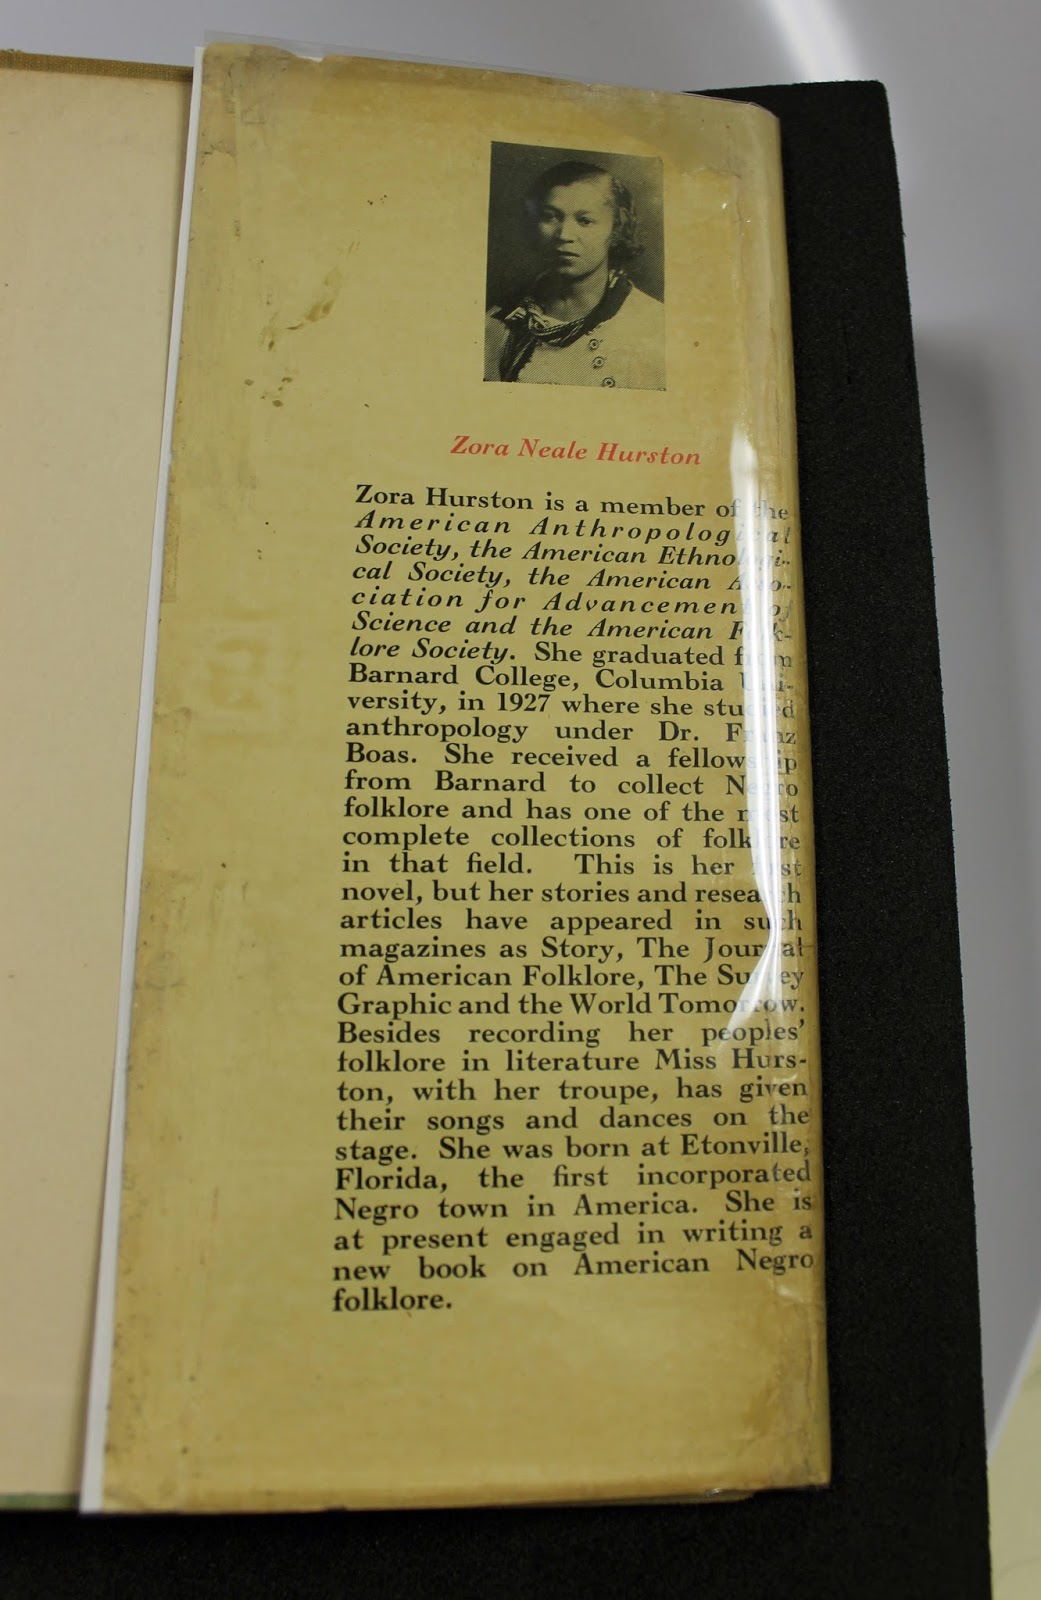 brandeis special collections spotlight zora neale hurston s zora neale hurston 2 this book along its restored rare dust jacket was procured through the generous support of the ann and abe effron fund